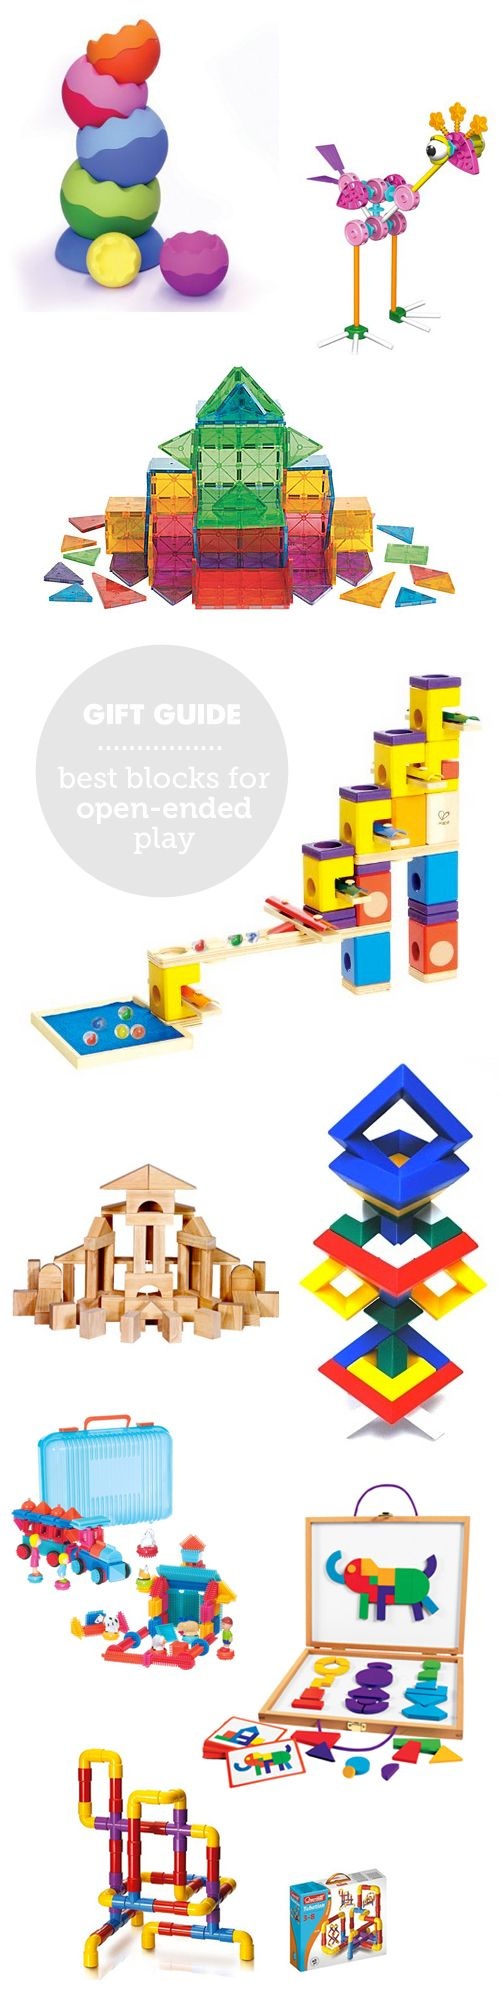 MPMK Toy Gift Guide: The Best Blocks for Open-Ened Play: Blocks are the ultimate creativity toy but they're not all created equal - these best picks for hours of open-ended play have detailed descriptions and age recommendations!